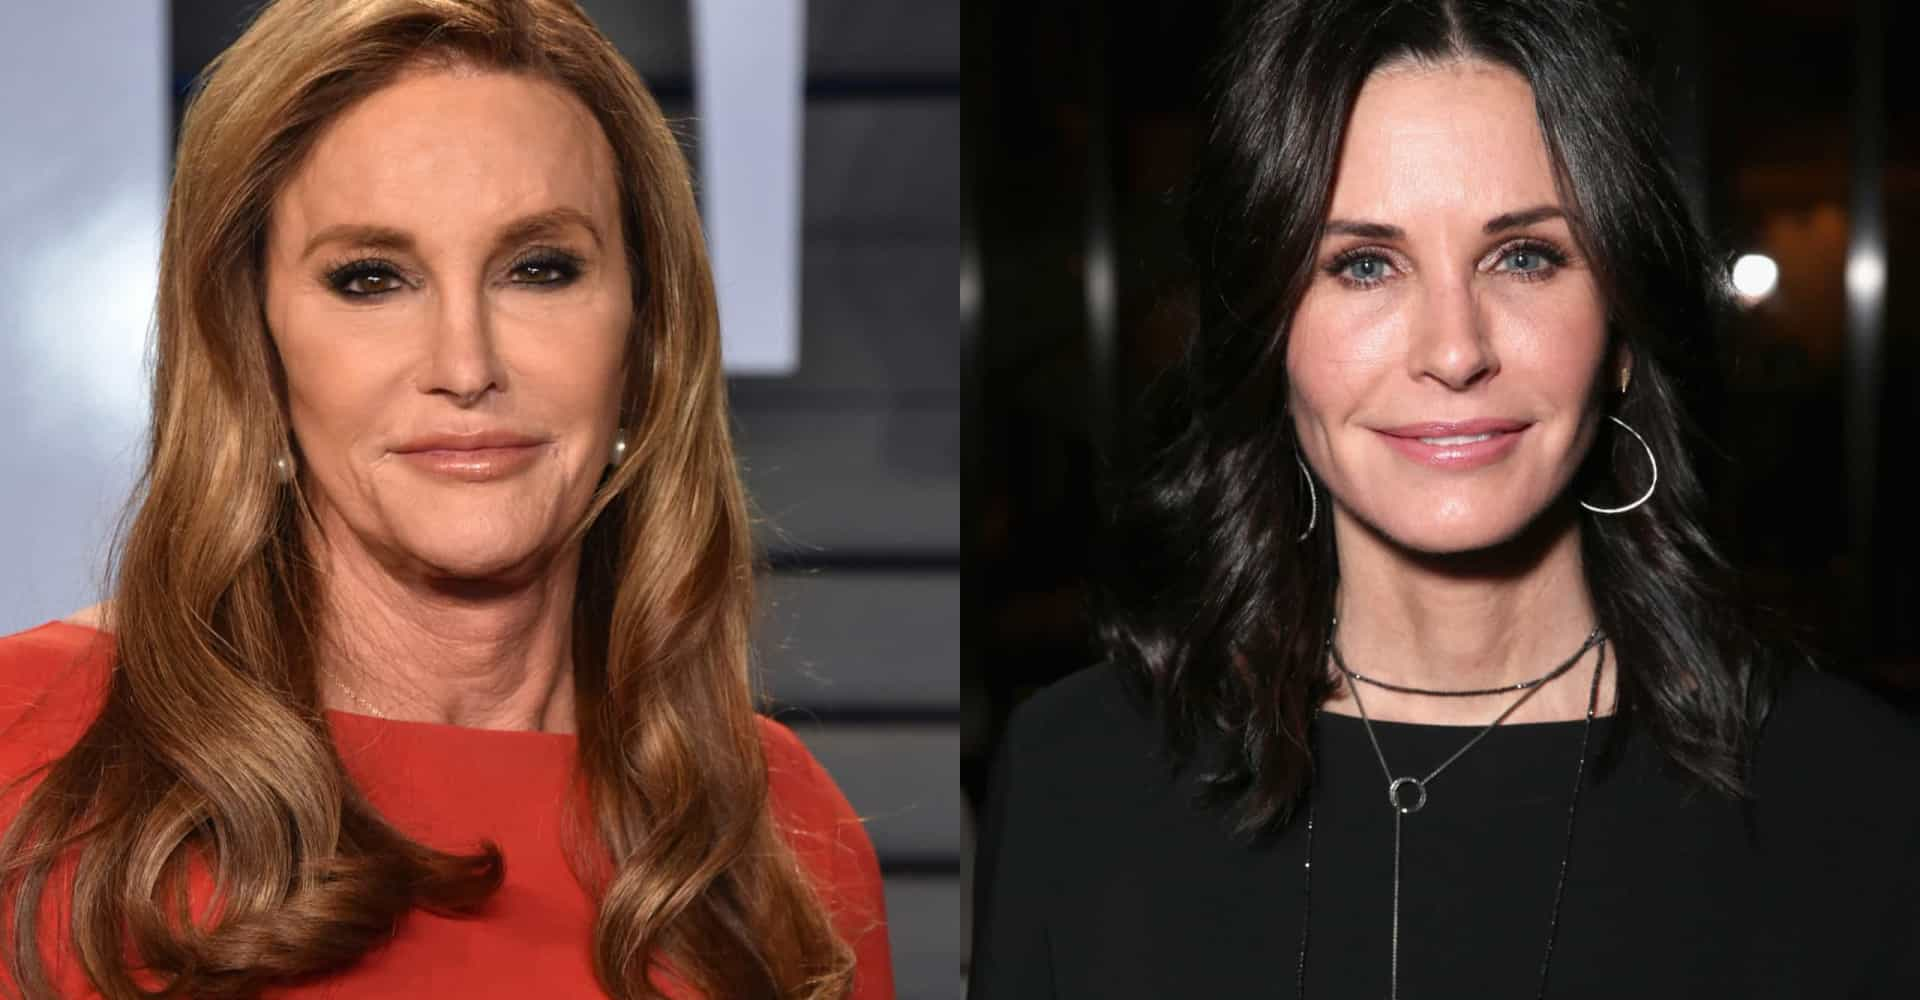 Courteney Cox and Caitlyn Jenner? Celebrity doppelgängers revealed